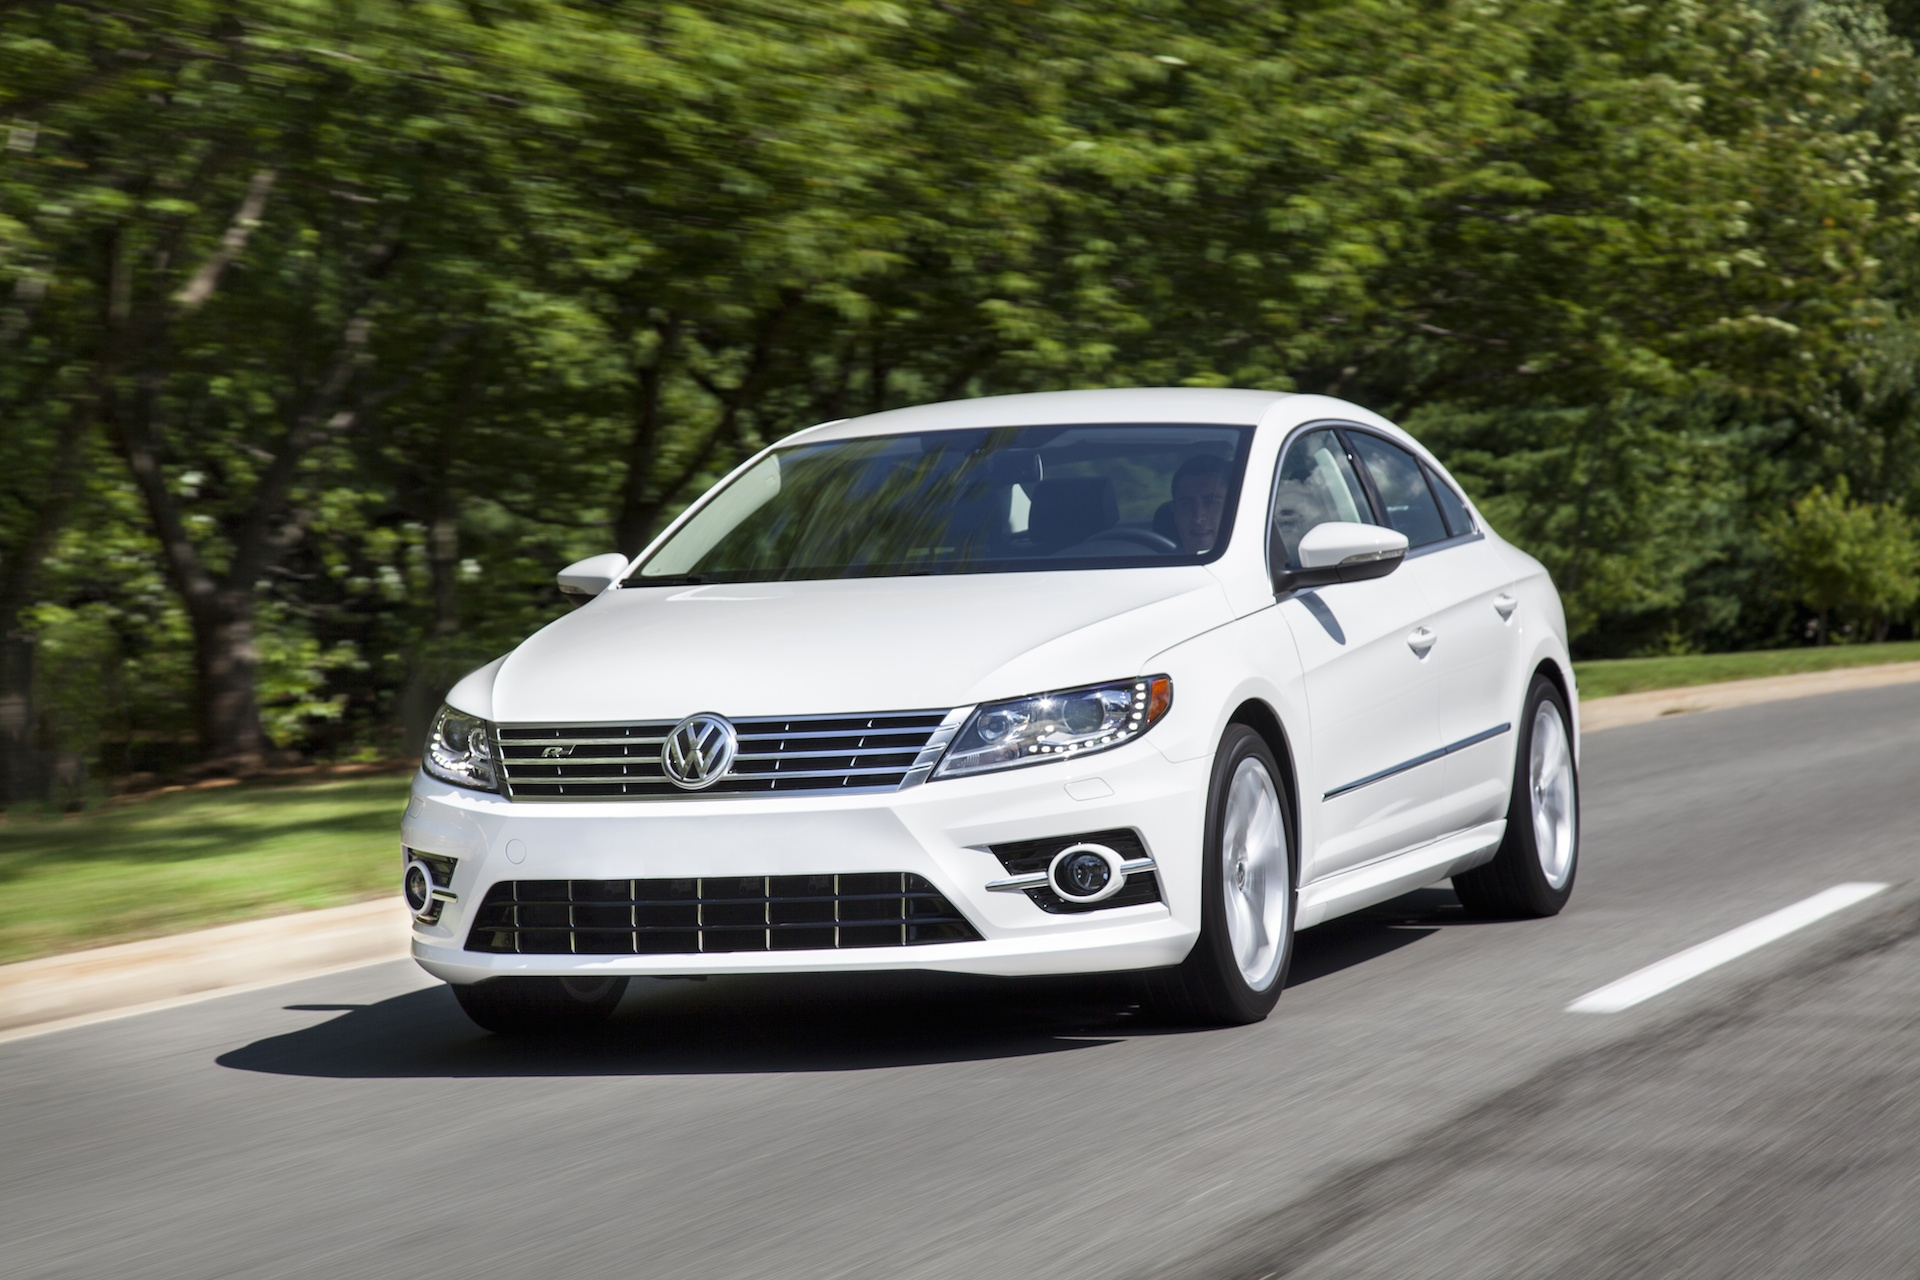 passat original volkswagen reviews photo review driver car s and